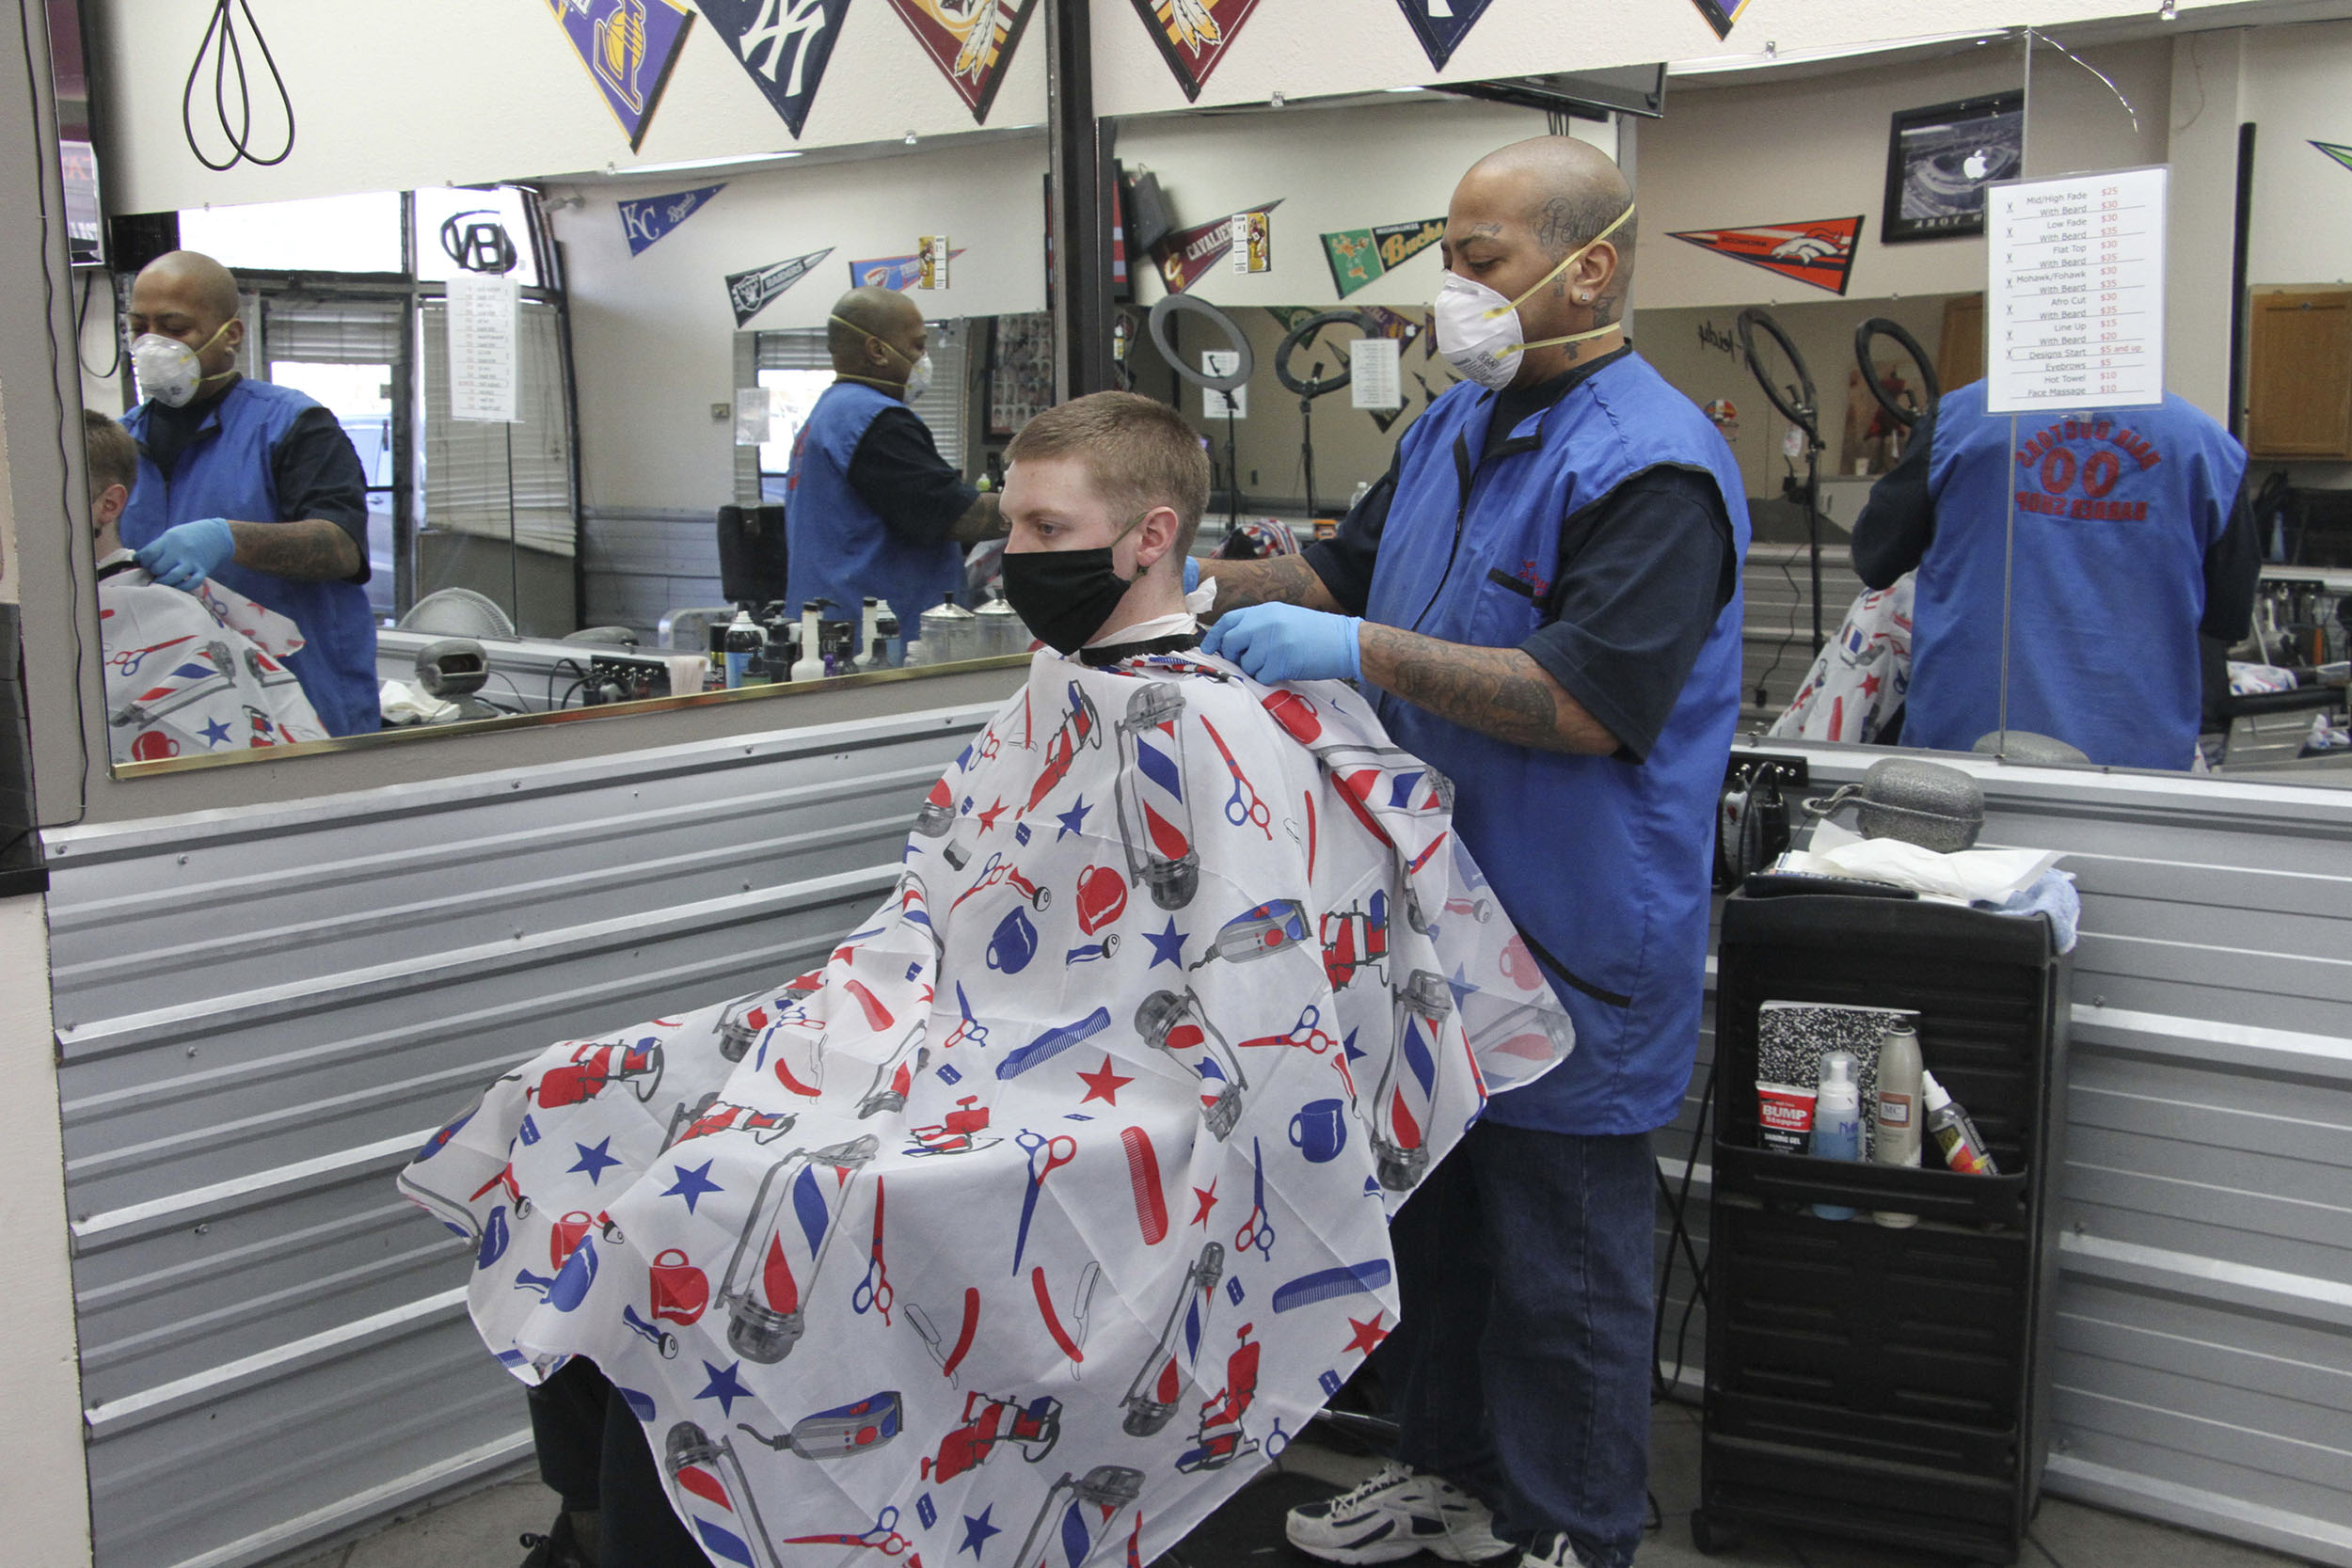 Larry Love, right, the manager at Hair Doctors in Anchorage, Alaska, gives an airman a haircut on Monday, April 27.